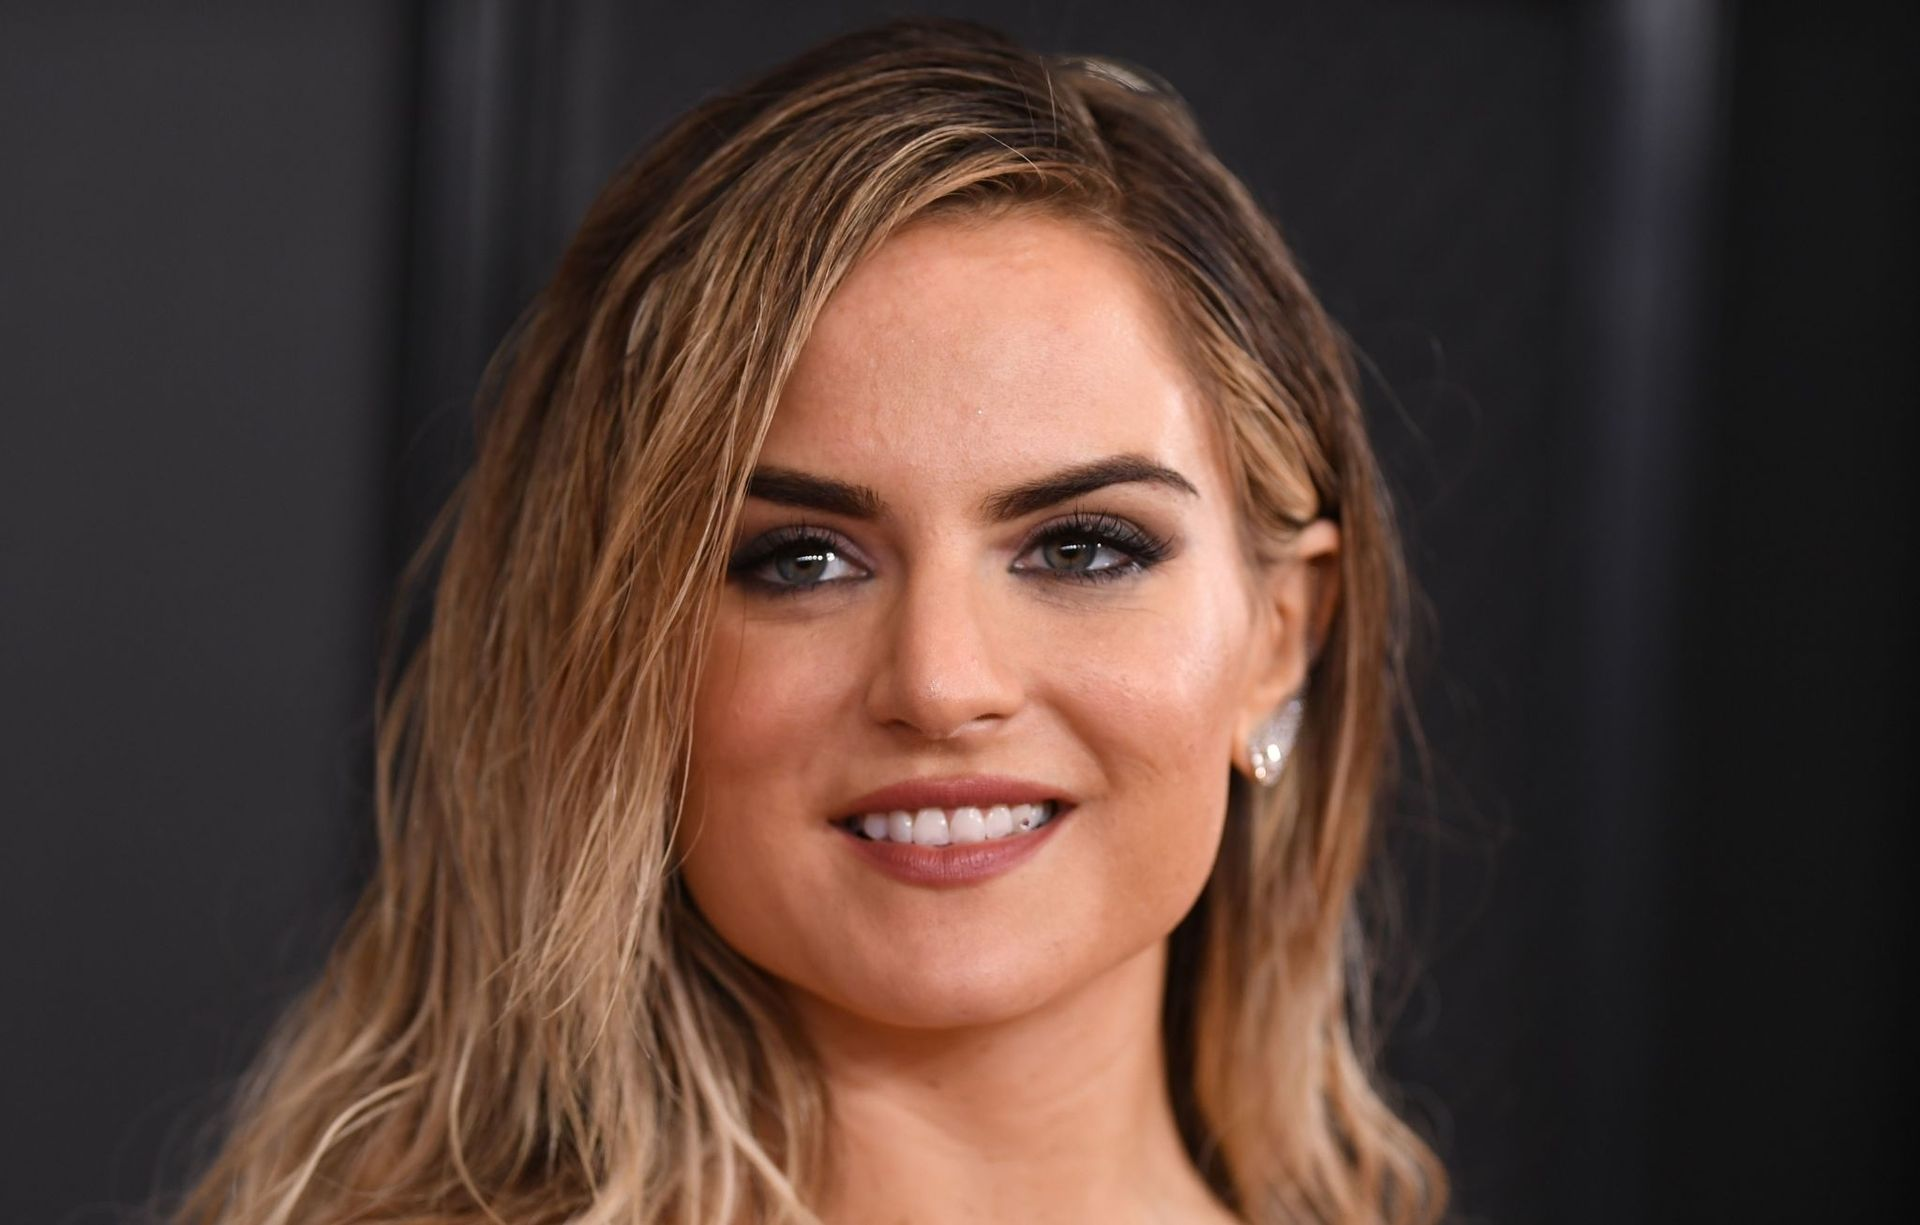 Jojo Shows Her Legs And Cleavage At The 62nd Annual Grammy Awards 0042